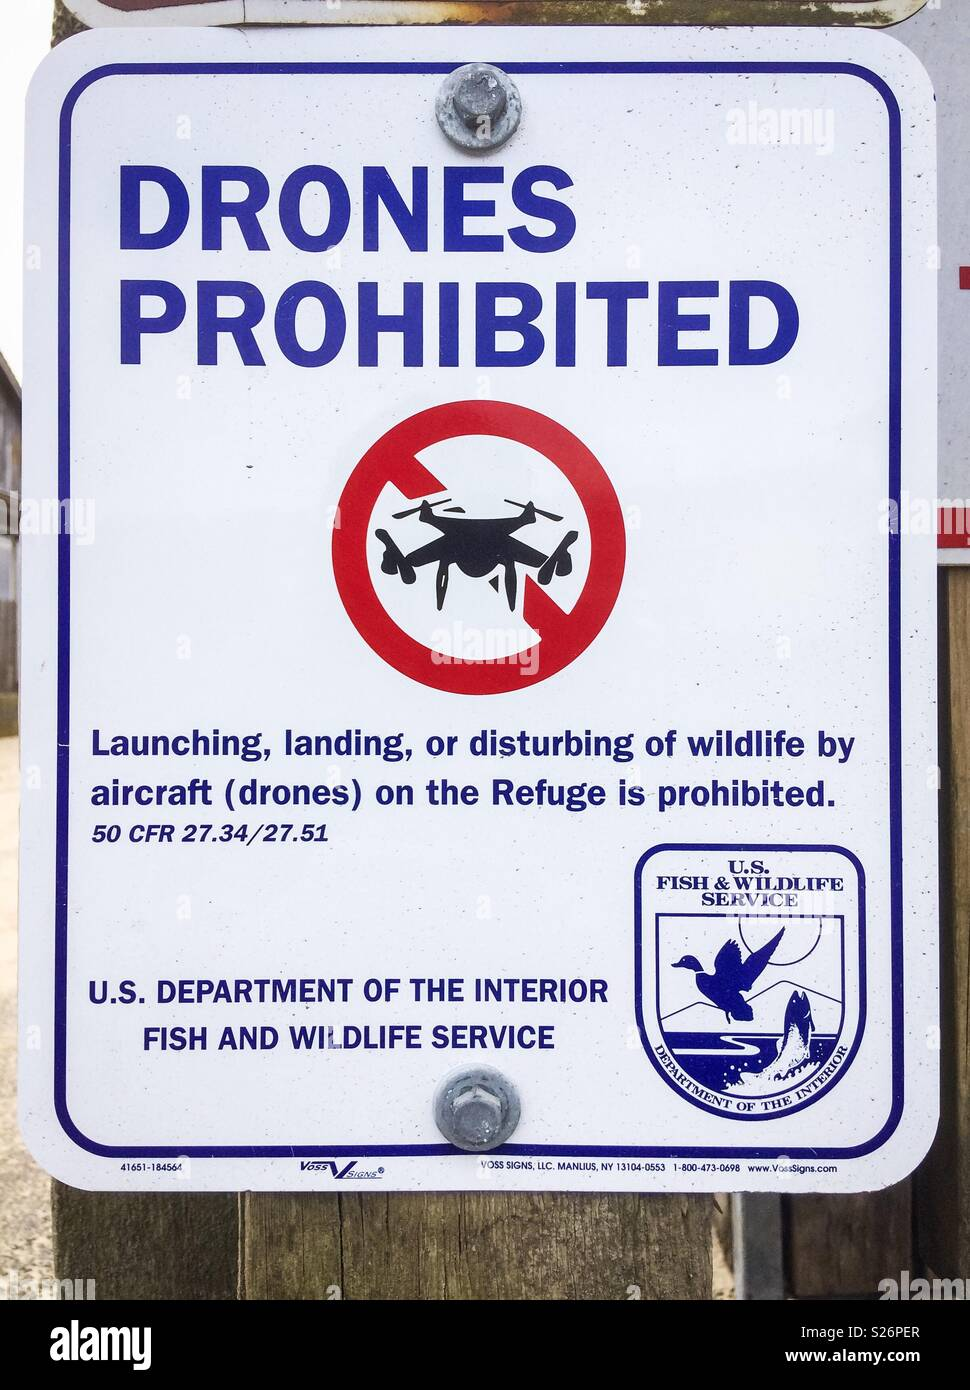 Drones prohibited sign post in order to protect wildlife, Cannon Beach, Oregon, USA. - Stock Image